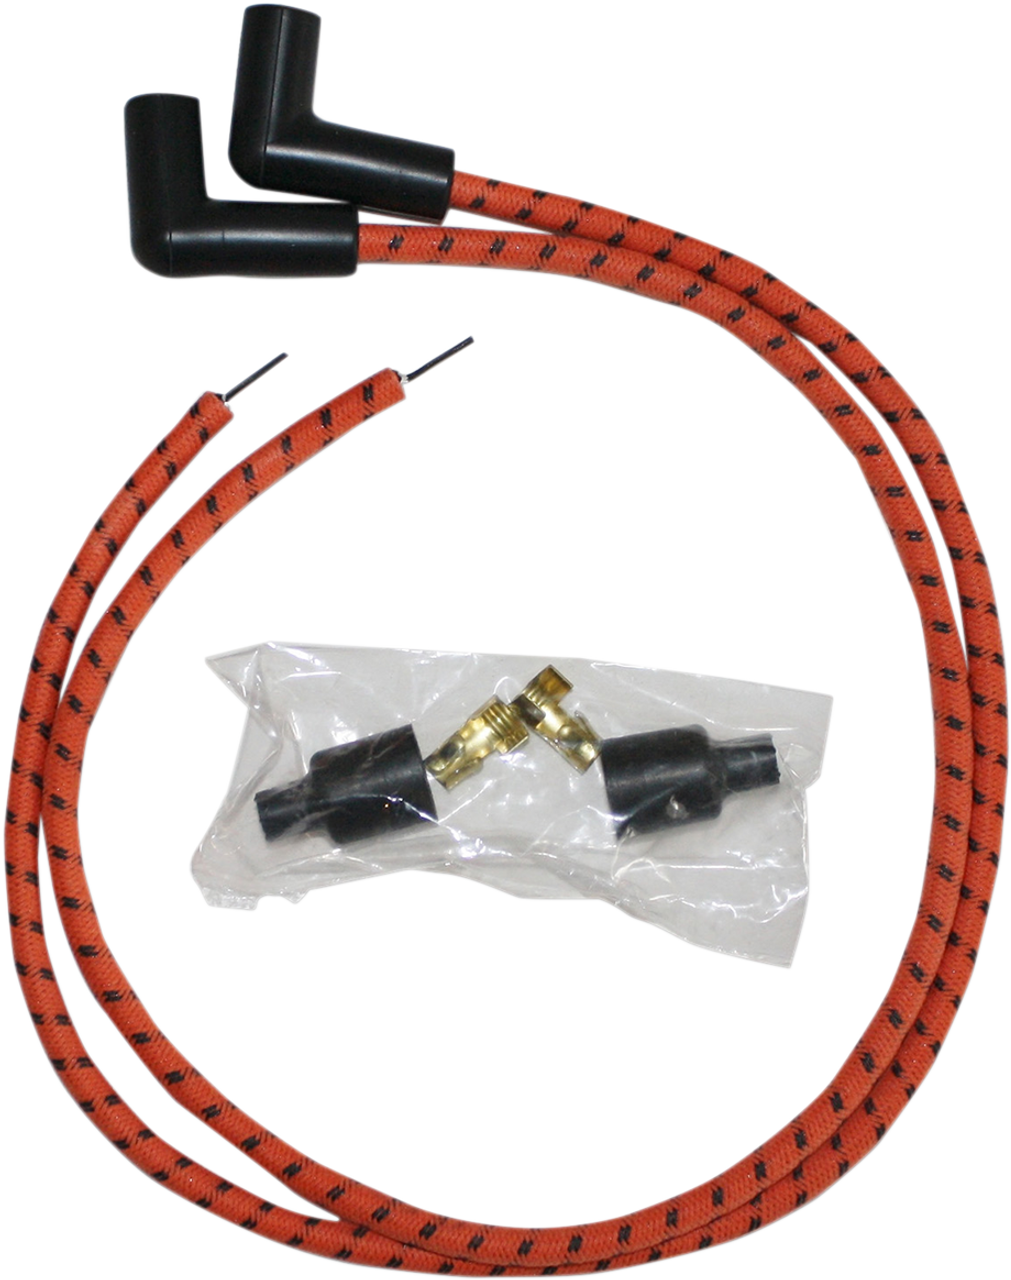 Sumax 8mm Universal Spark Plug Wire Kit for Harley - Orange with ...